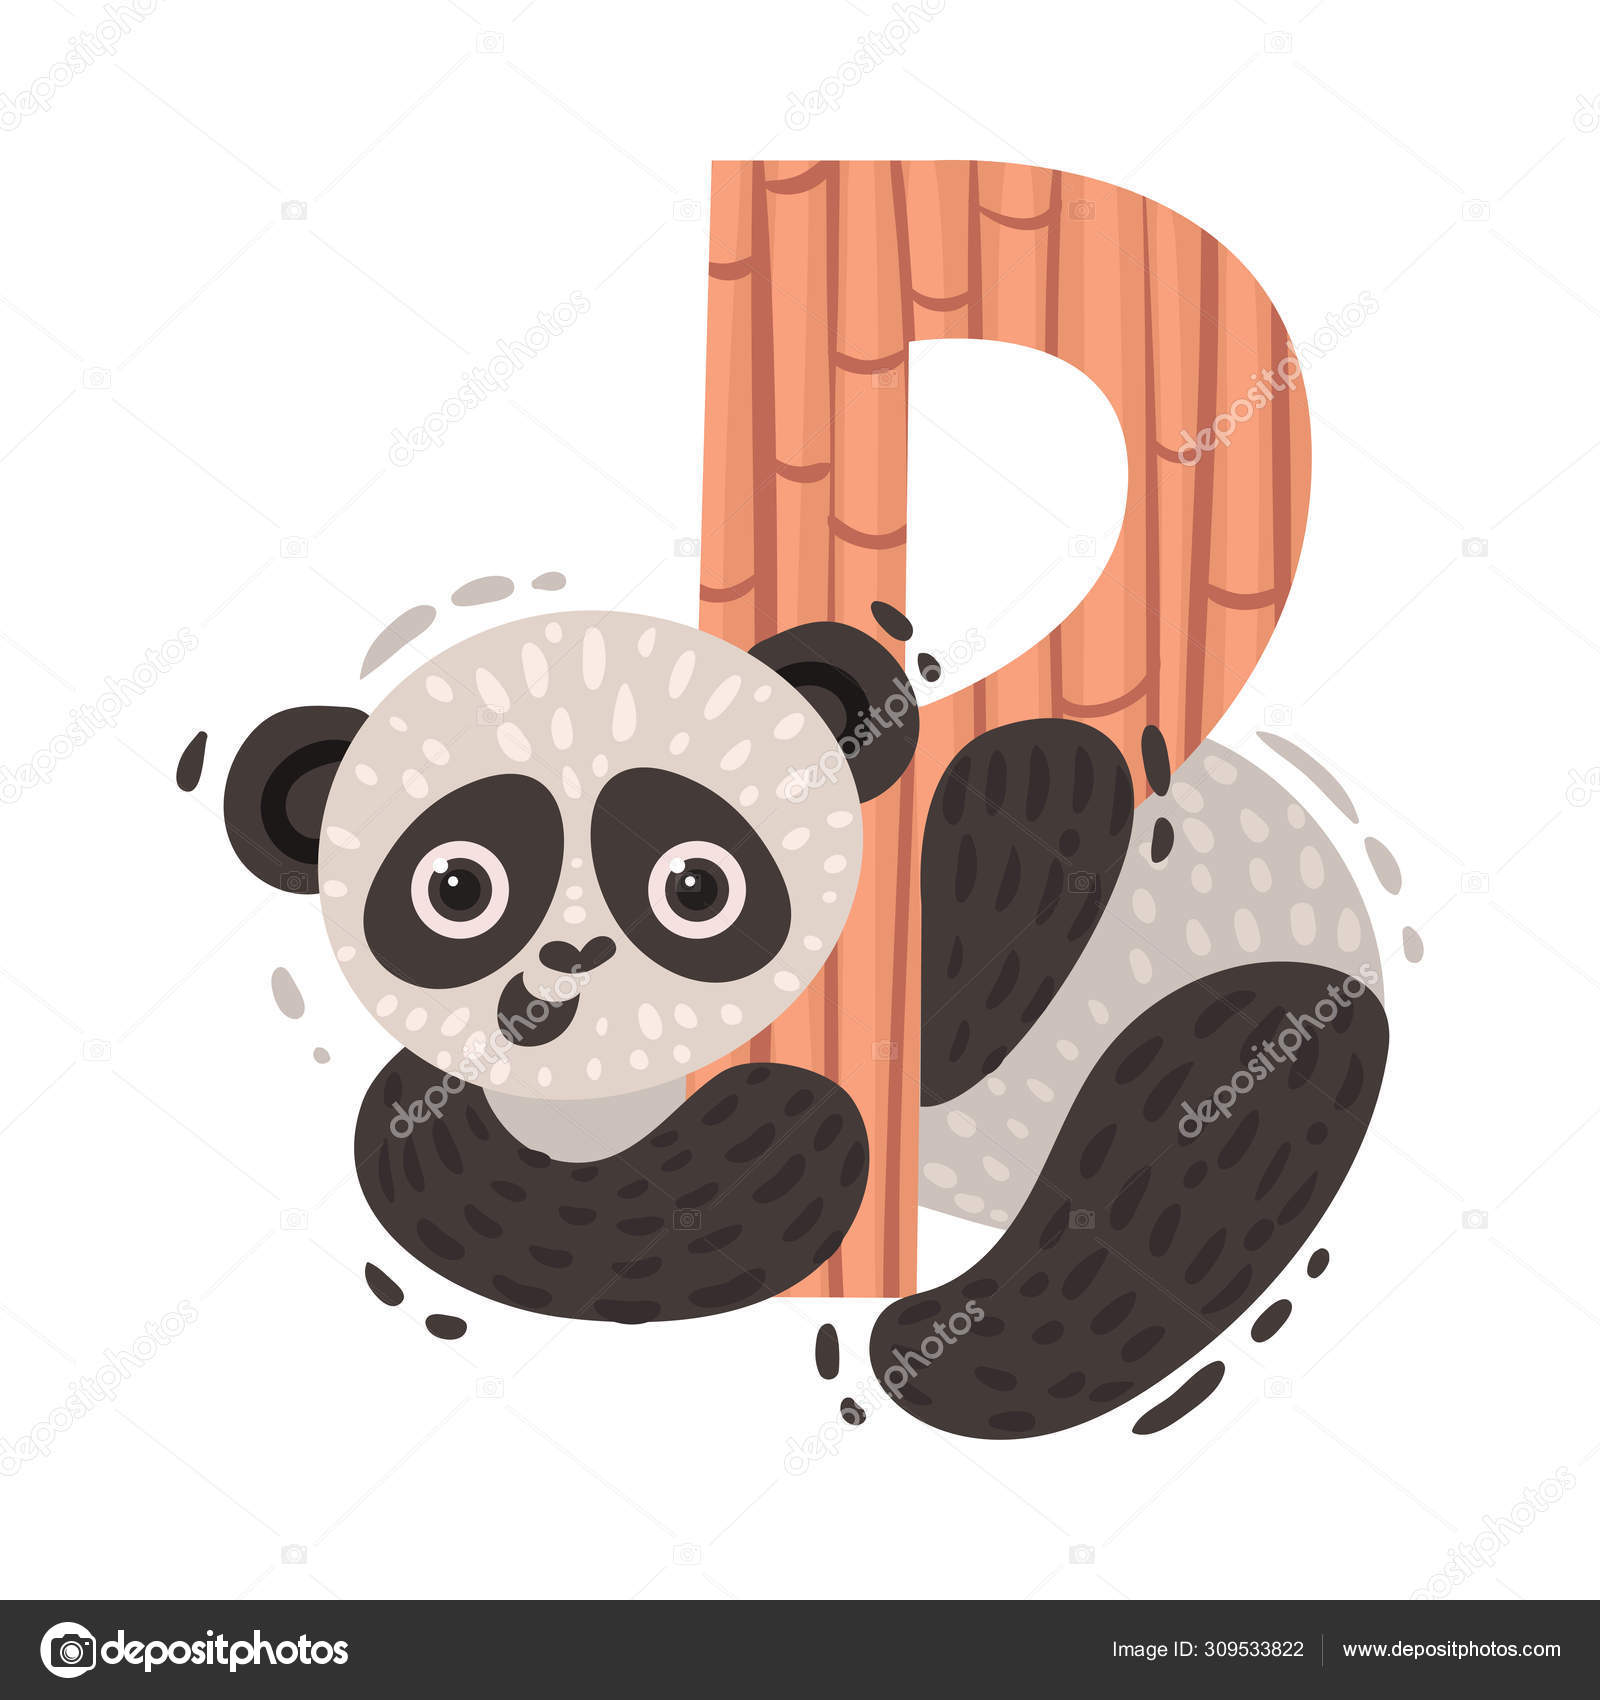 Panda and letter P. Vector illustration on a white background. 10